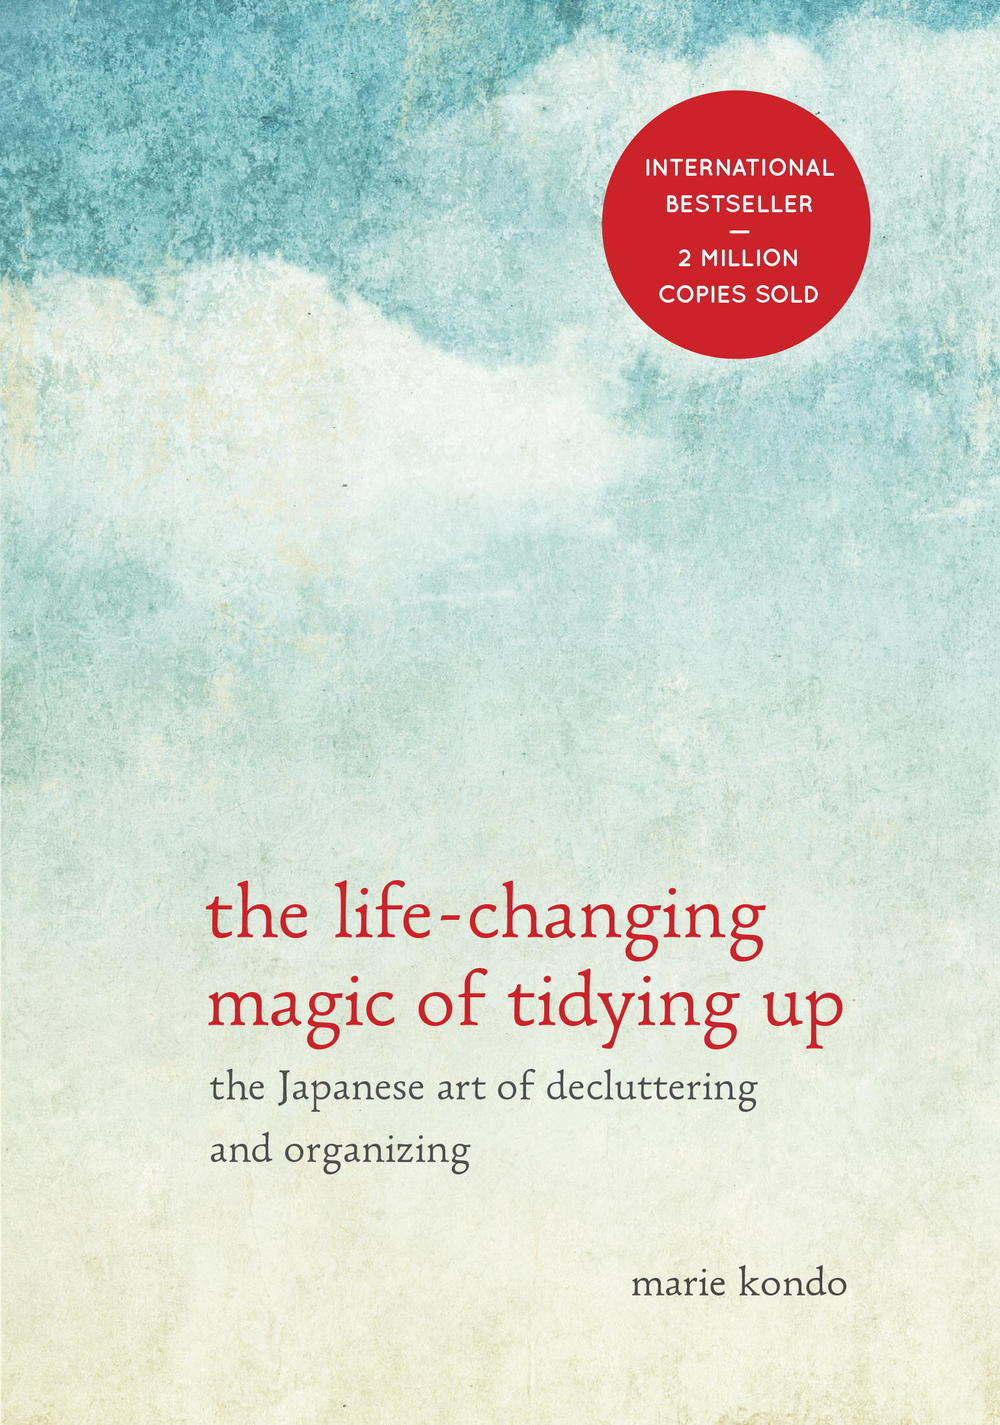 The Life Changing Magic of Tidying Up. Powell's. $17.